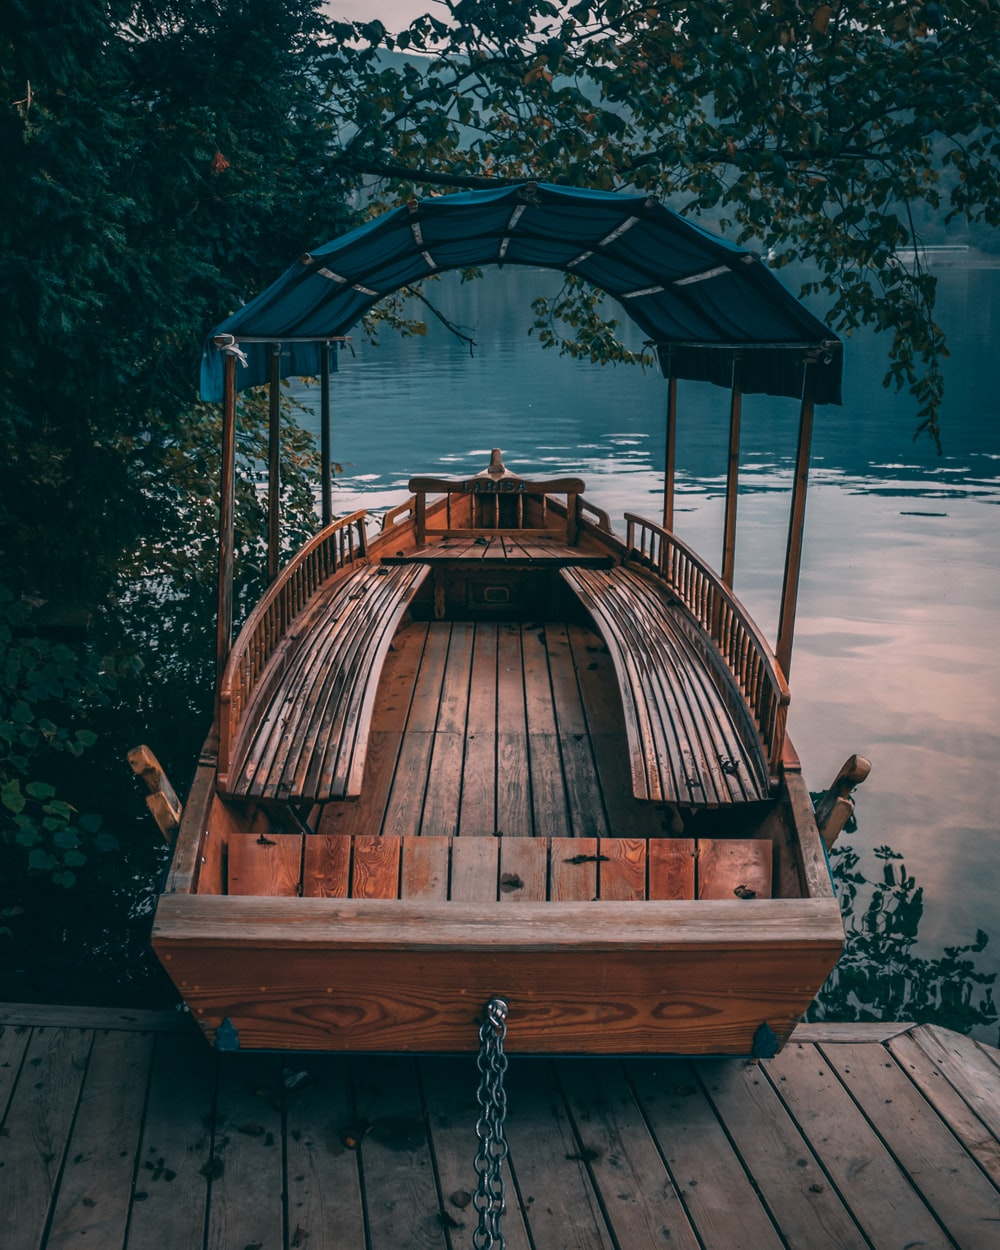 brown wooden boat near body of water and wooden dock surrounded with green trees